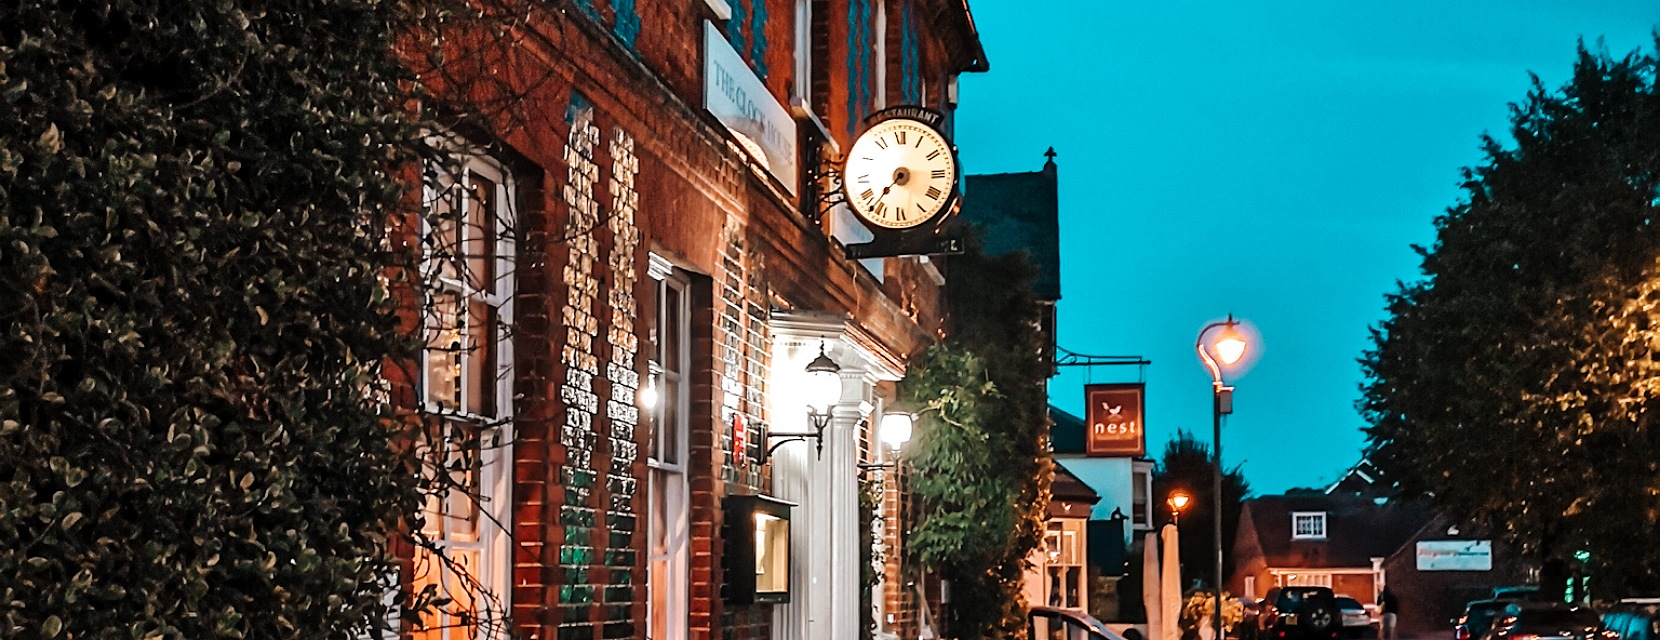 Restaurant recommendation: The Clock House, romantic fine dining in Surrey 19